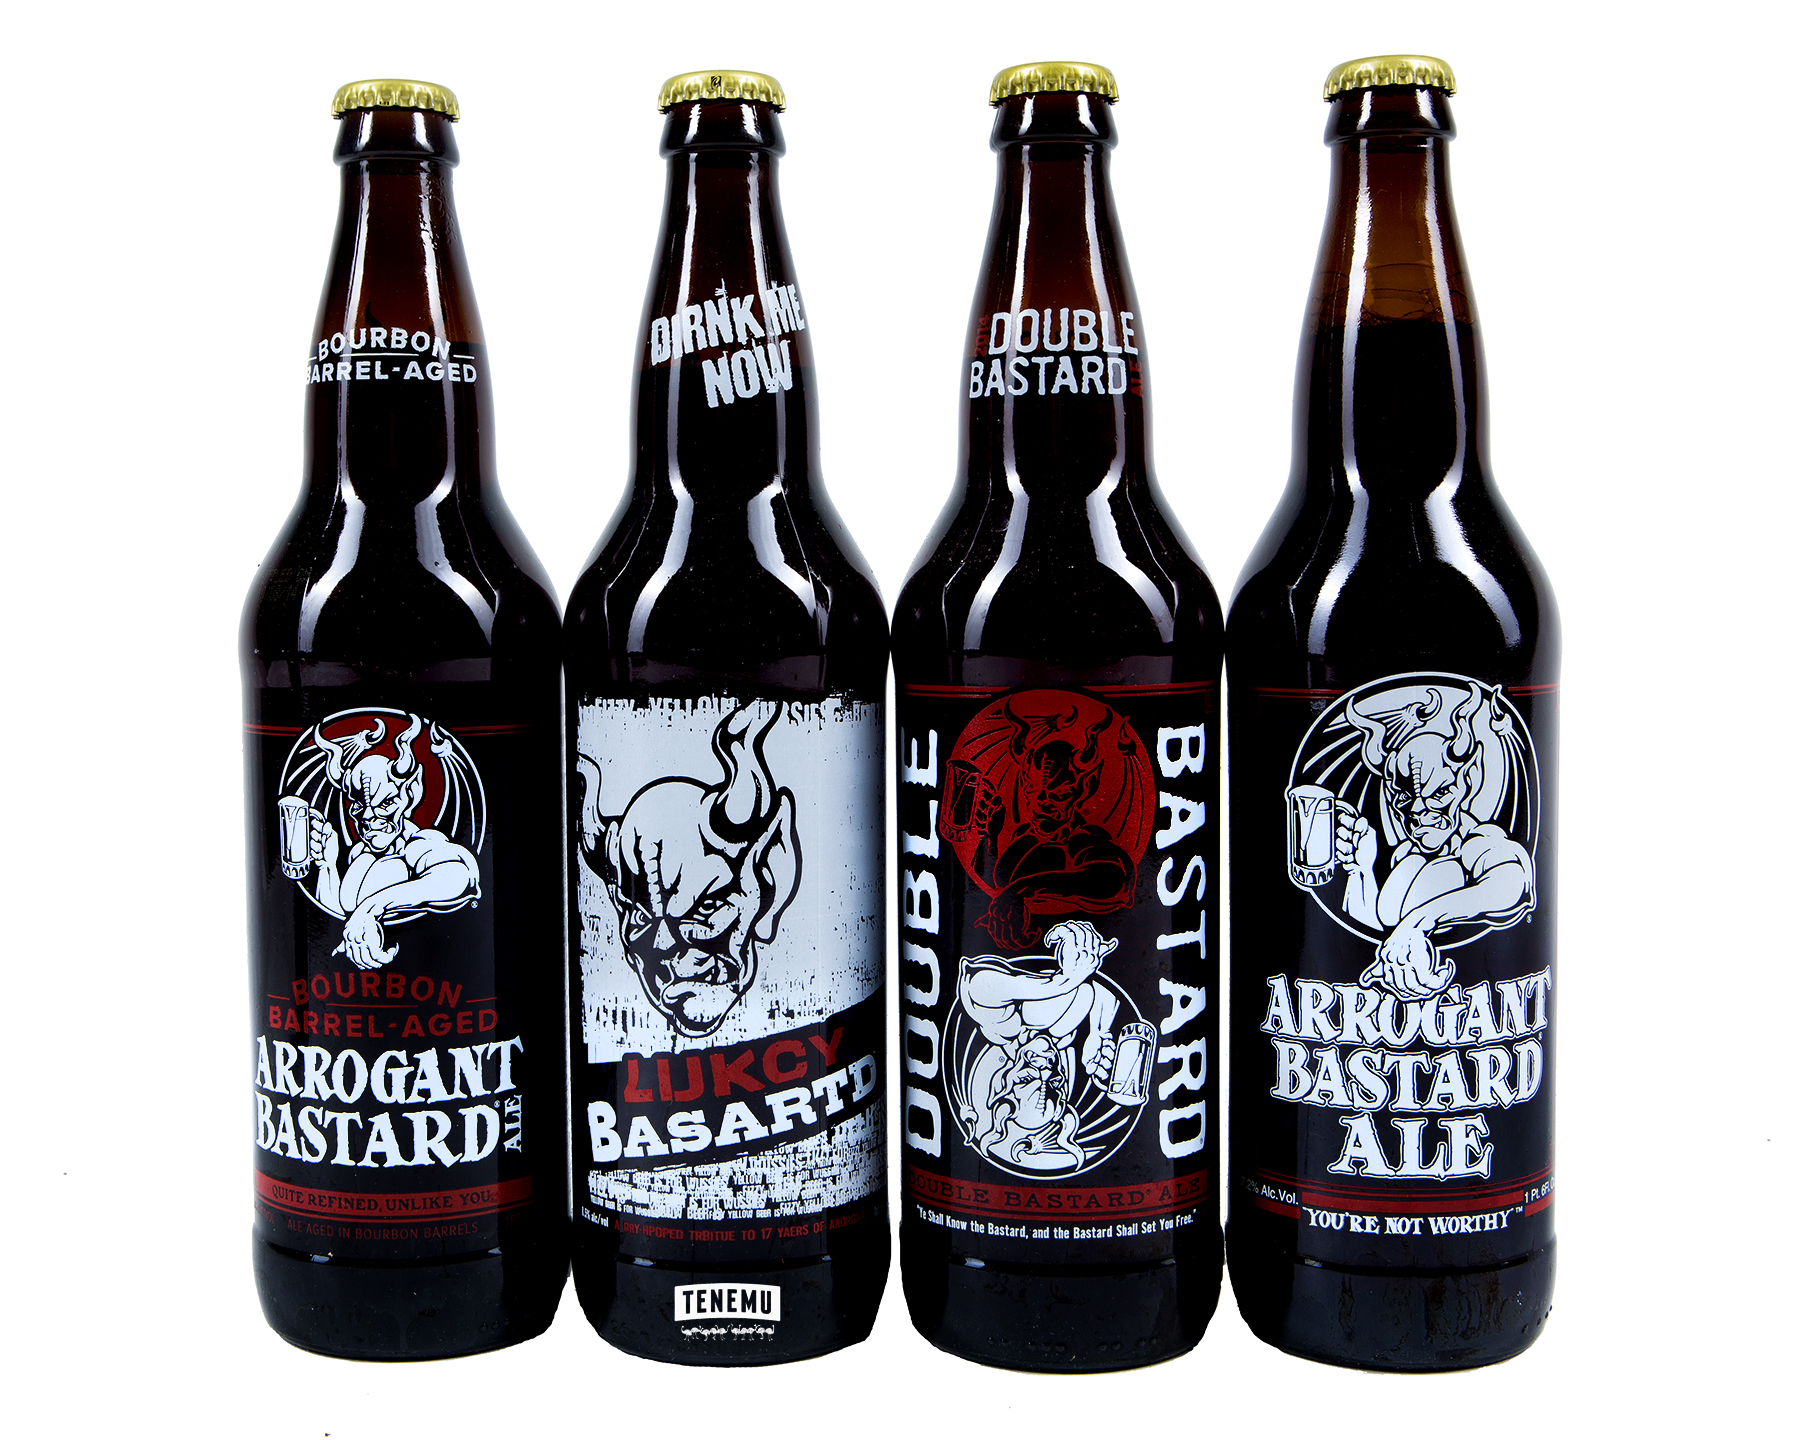 Image result for arrogant bastard ale